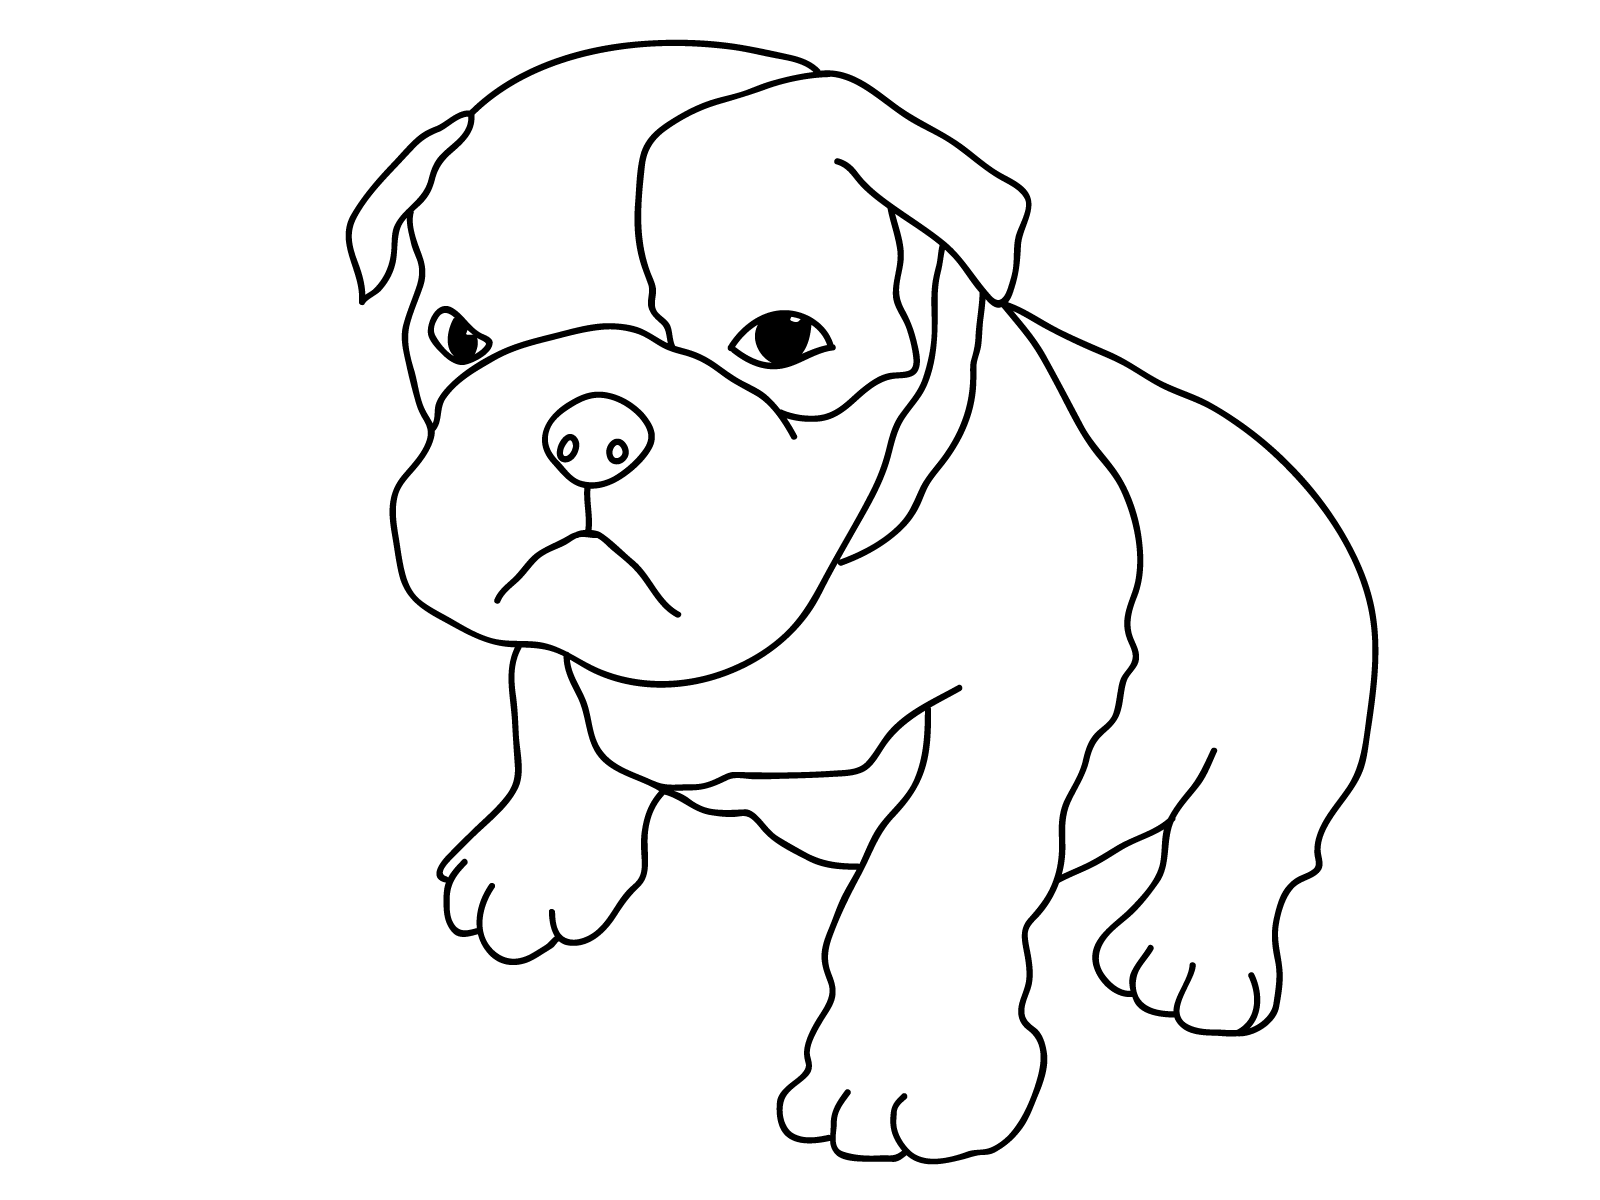 dog coloring picture animals coloring pages cute puppy playing kids picture dog coloring